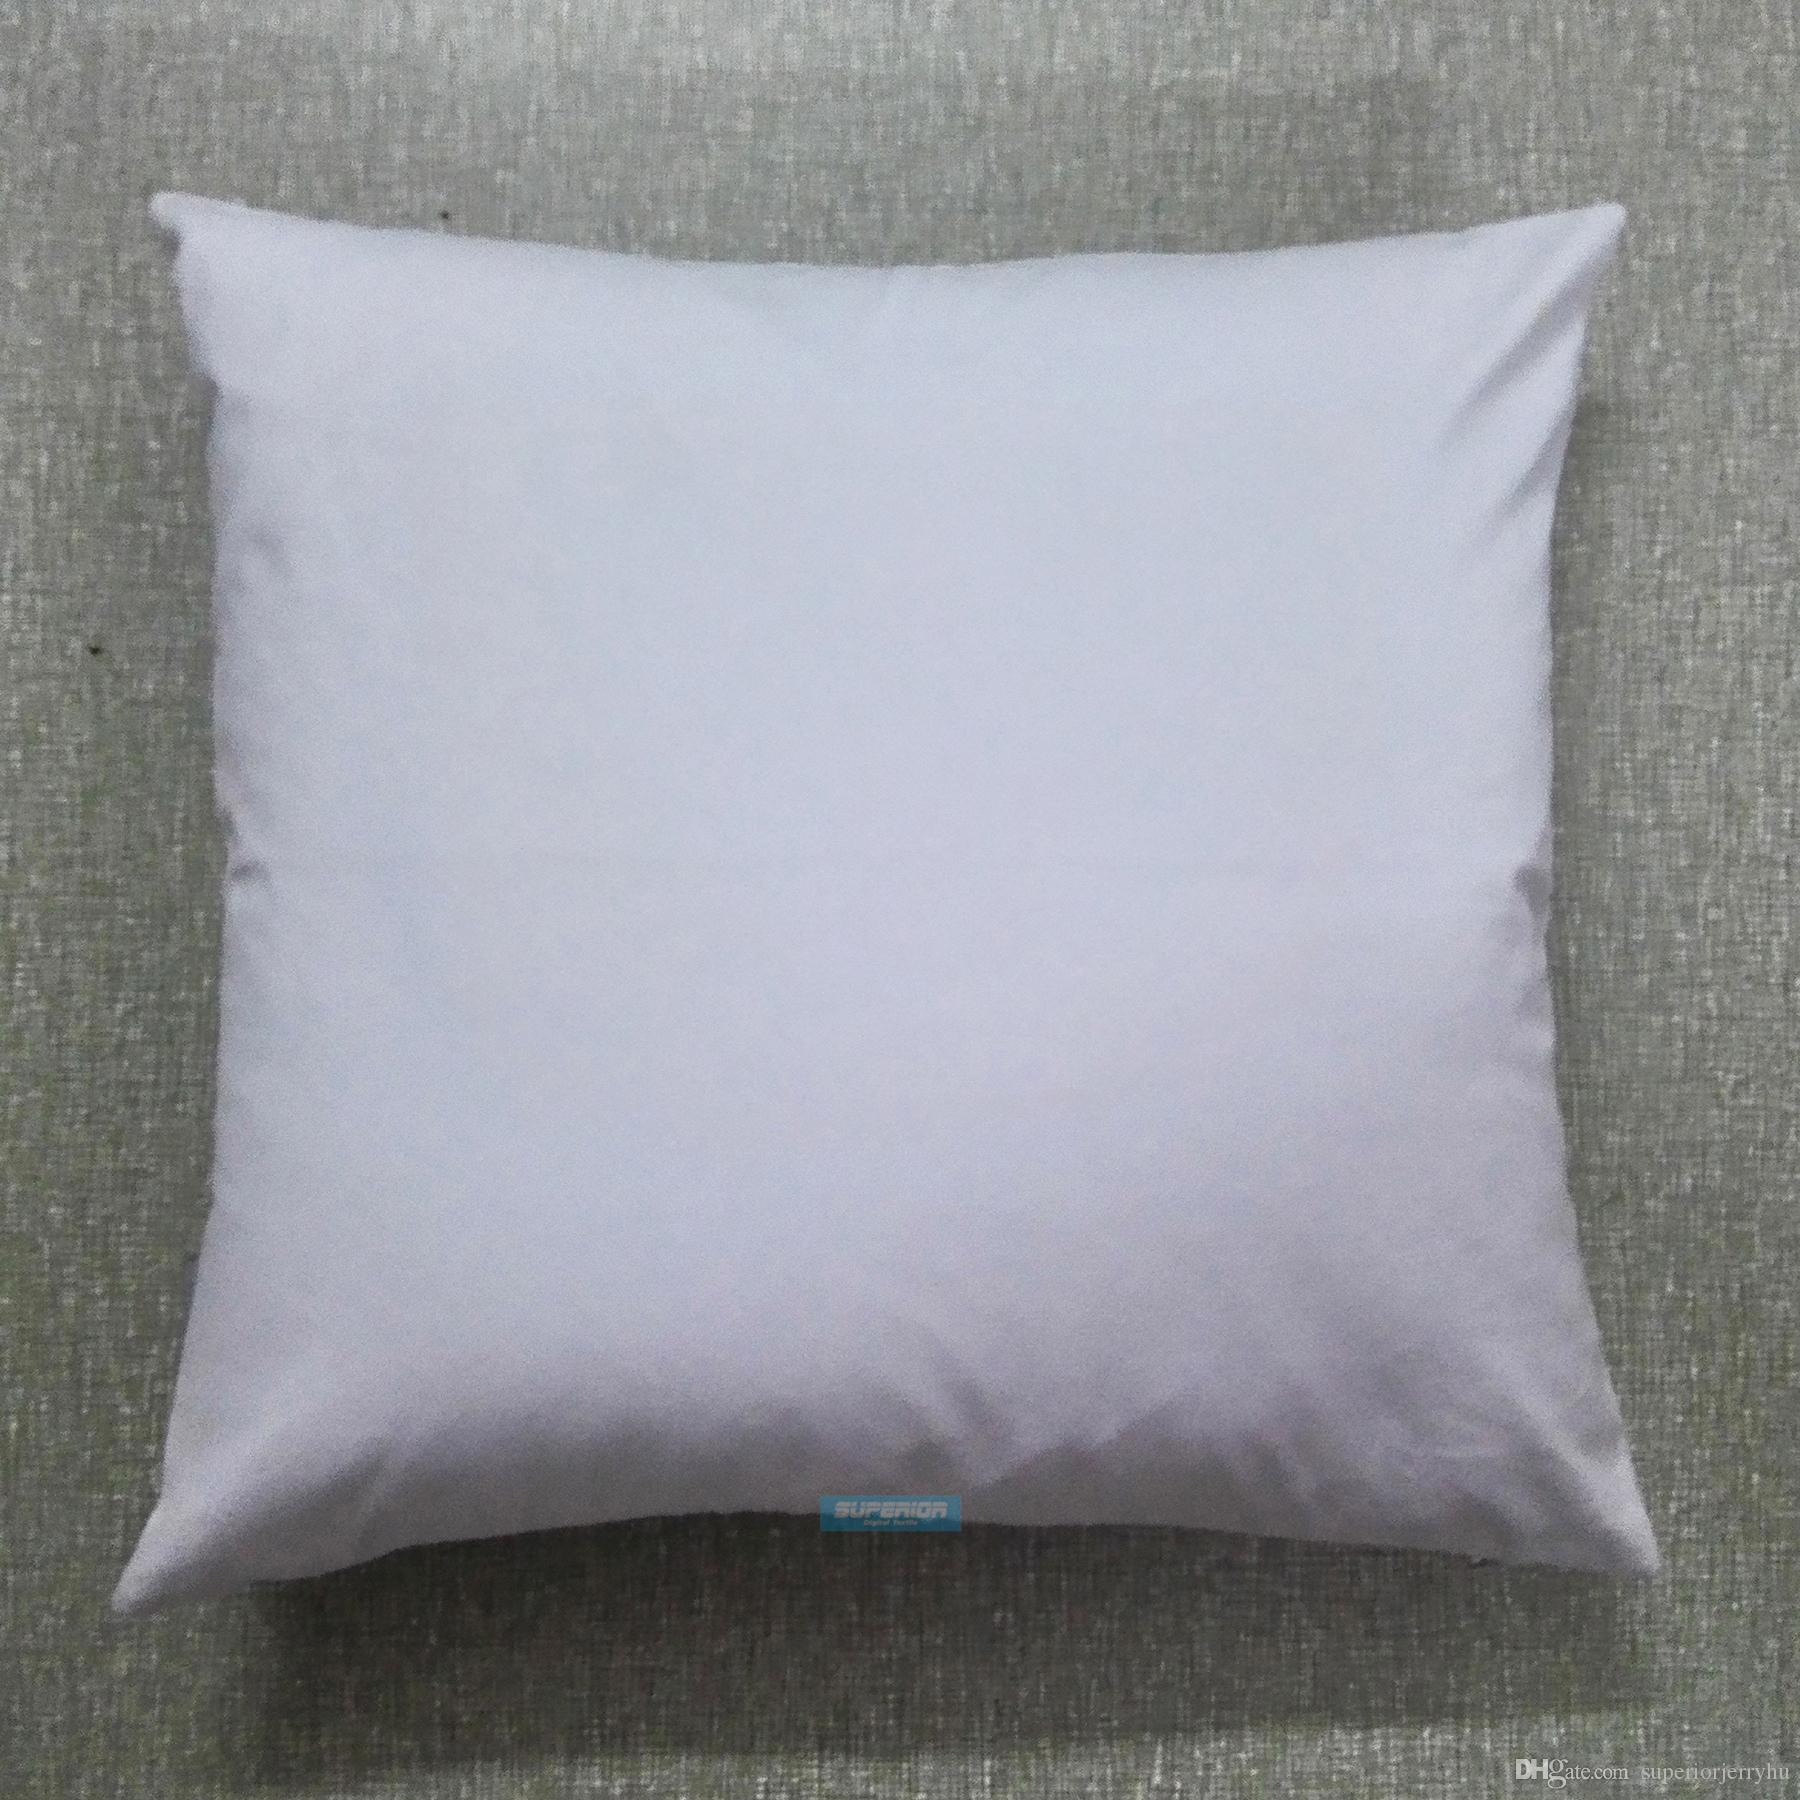 30pcs All Size Plain White Color Pure Cotton Canvas Pillow Cover With Hidden Zipper For Custom/DIY Print Blank Cotton Pillow Cover Any Color